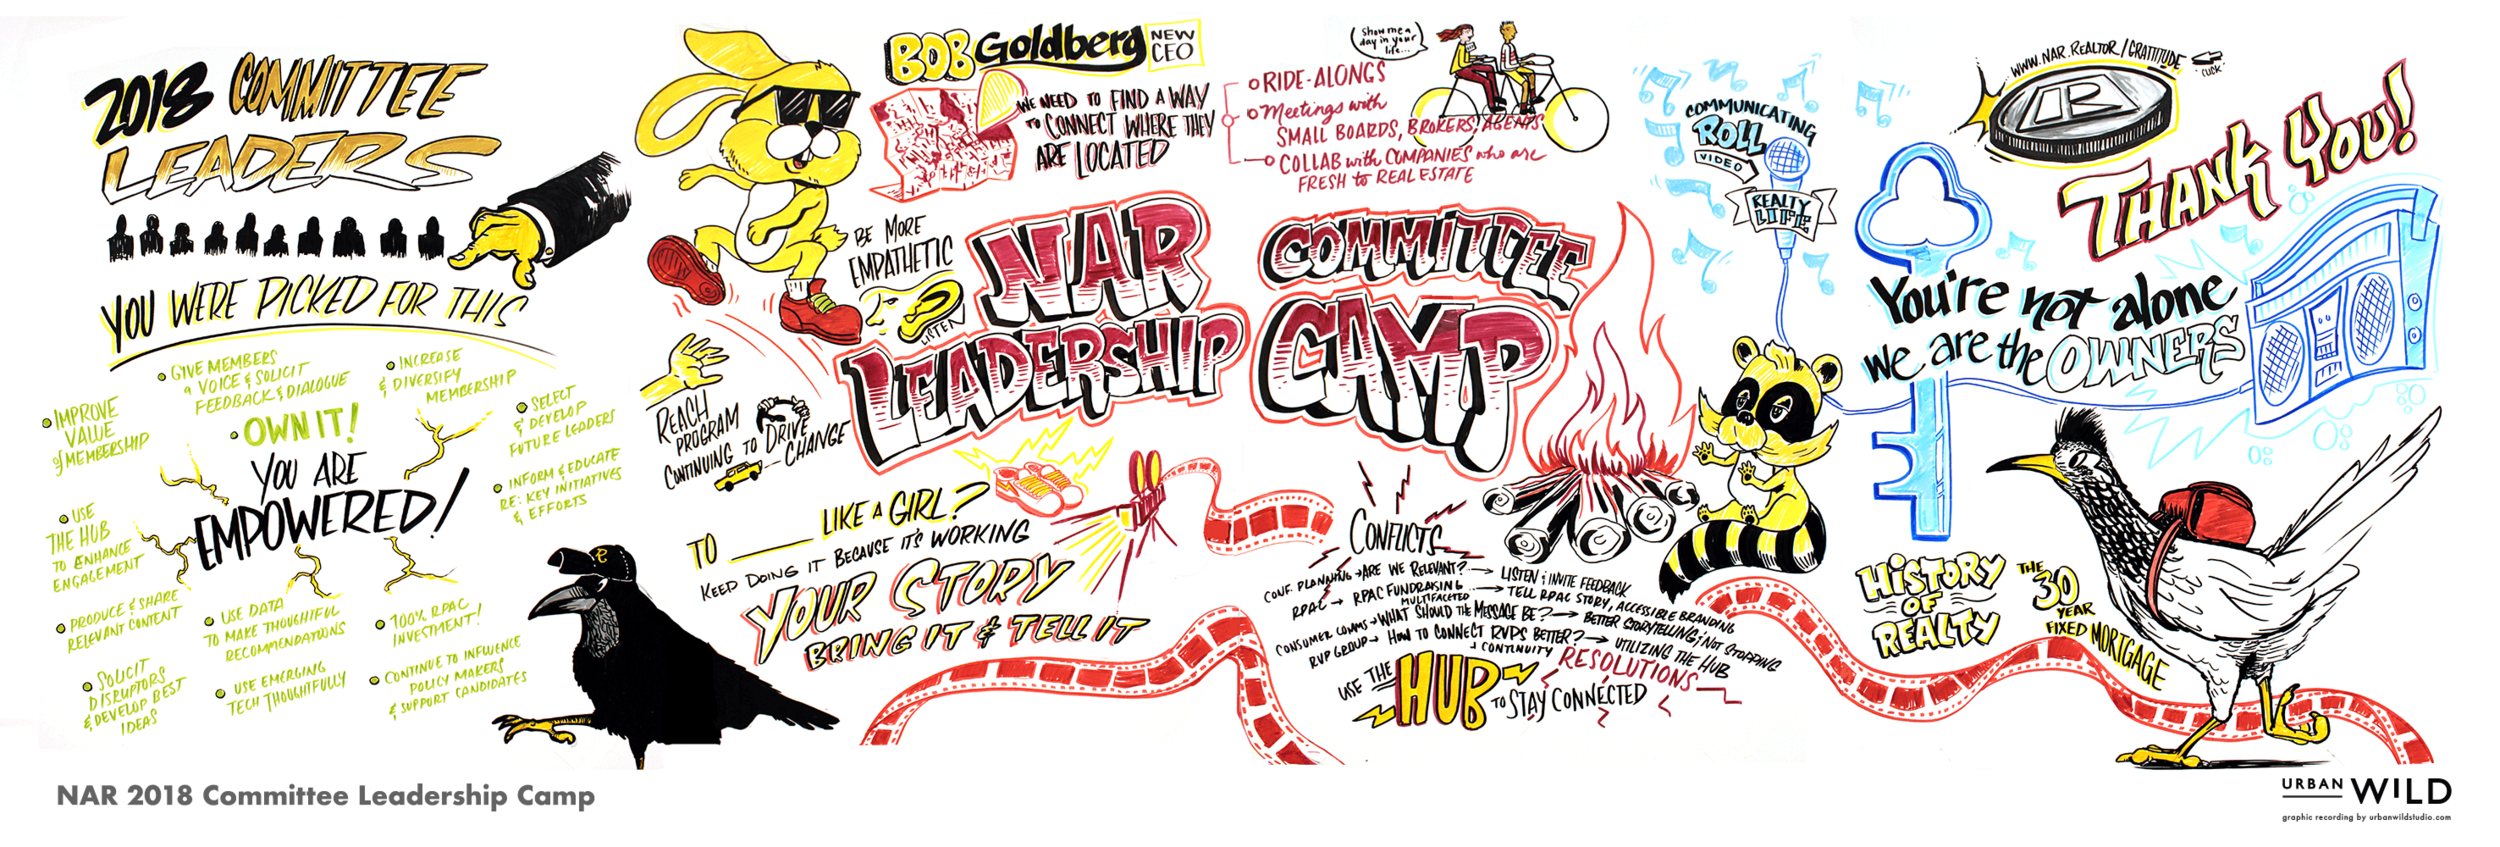 NAR_CommitteeLeadershipCamp_GraphicRecording.png